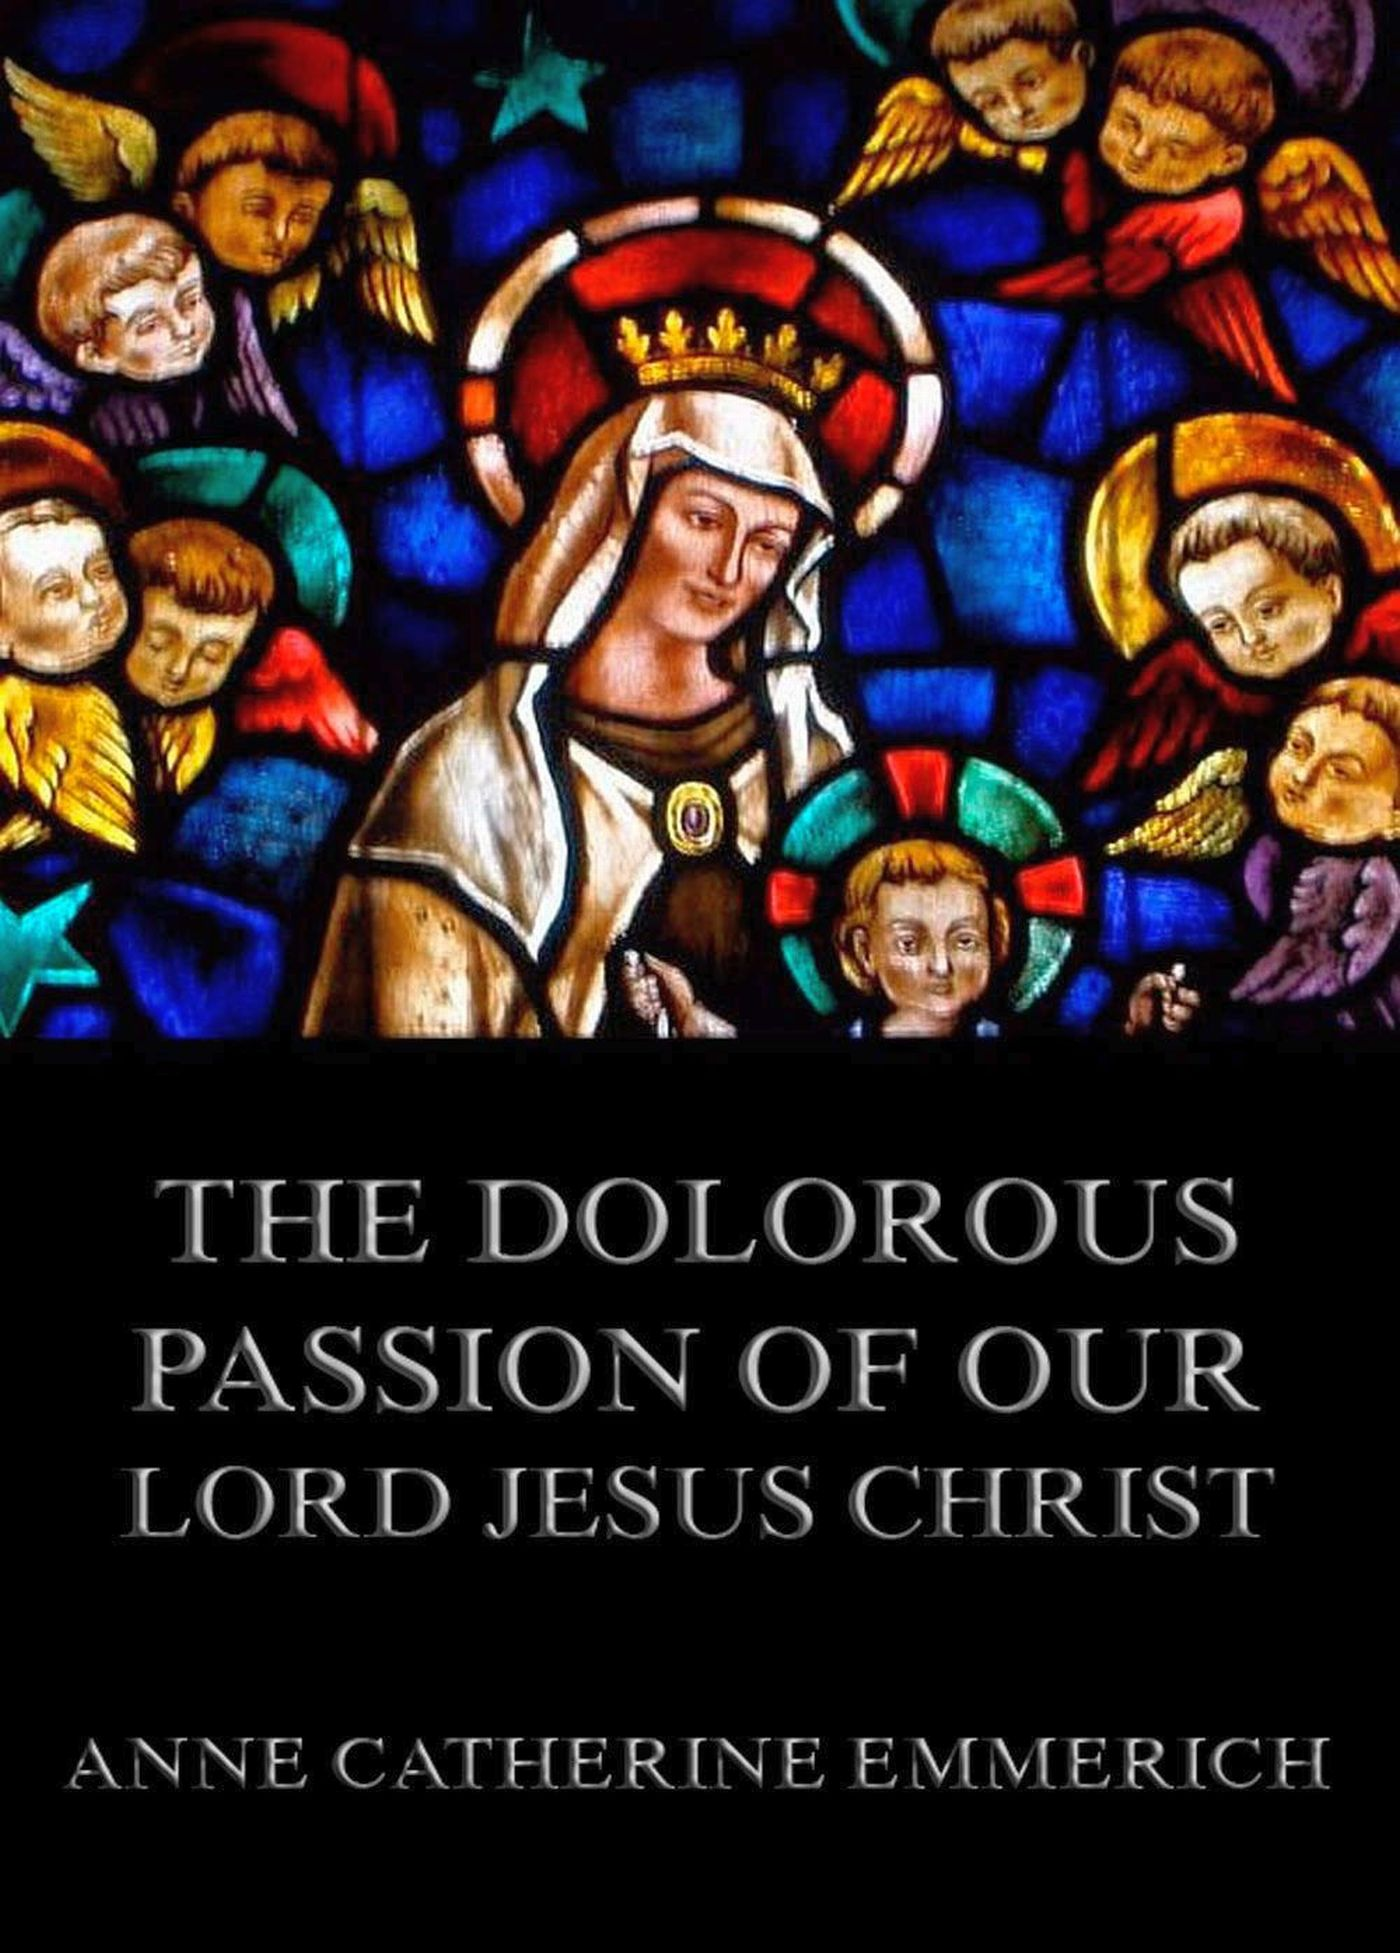 Anne Catherine Emmerich The Dolorous Passion ofOur Lord Jesus Christ charles g finney christ our advocate